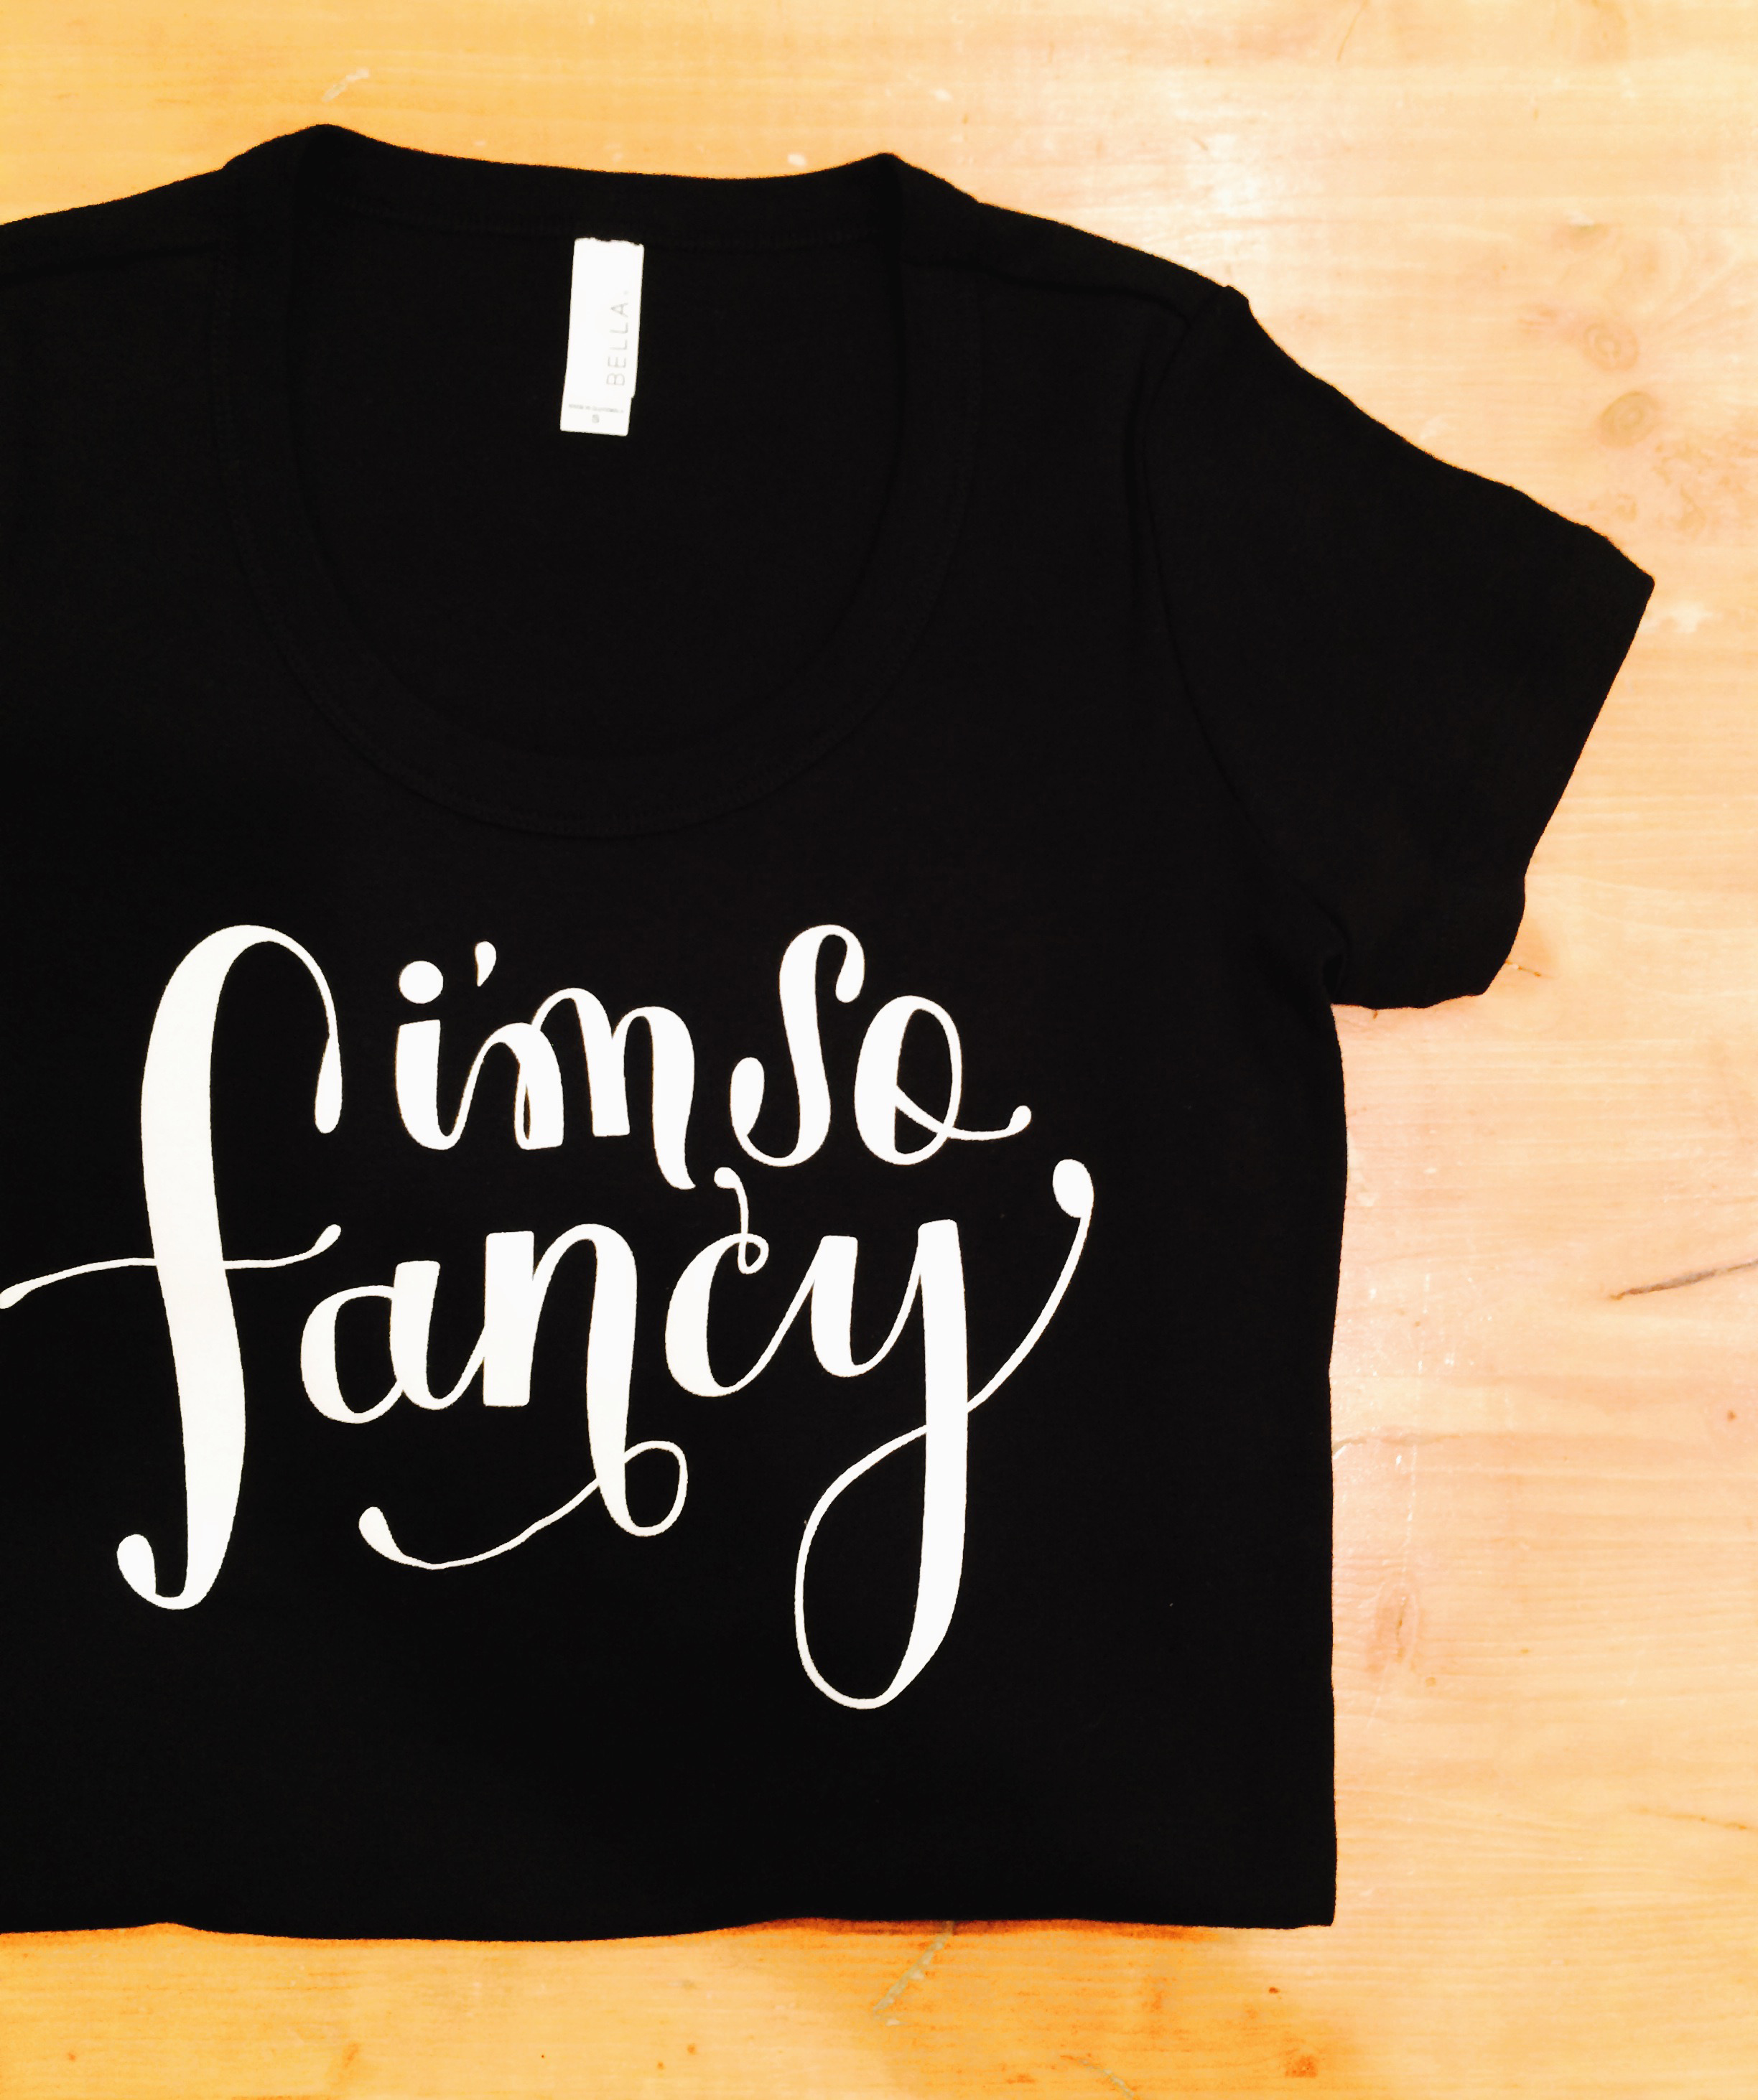 Hand-Lettered Screen printed T-Shirt